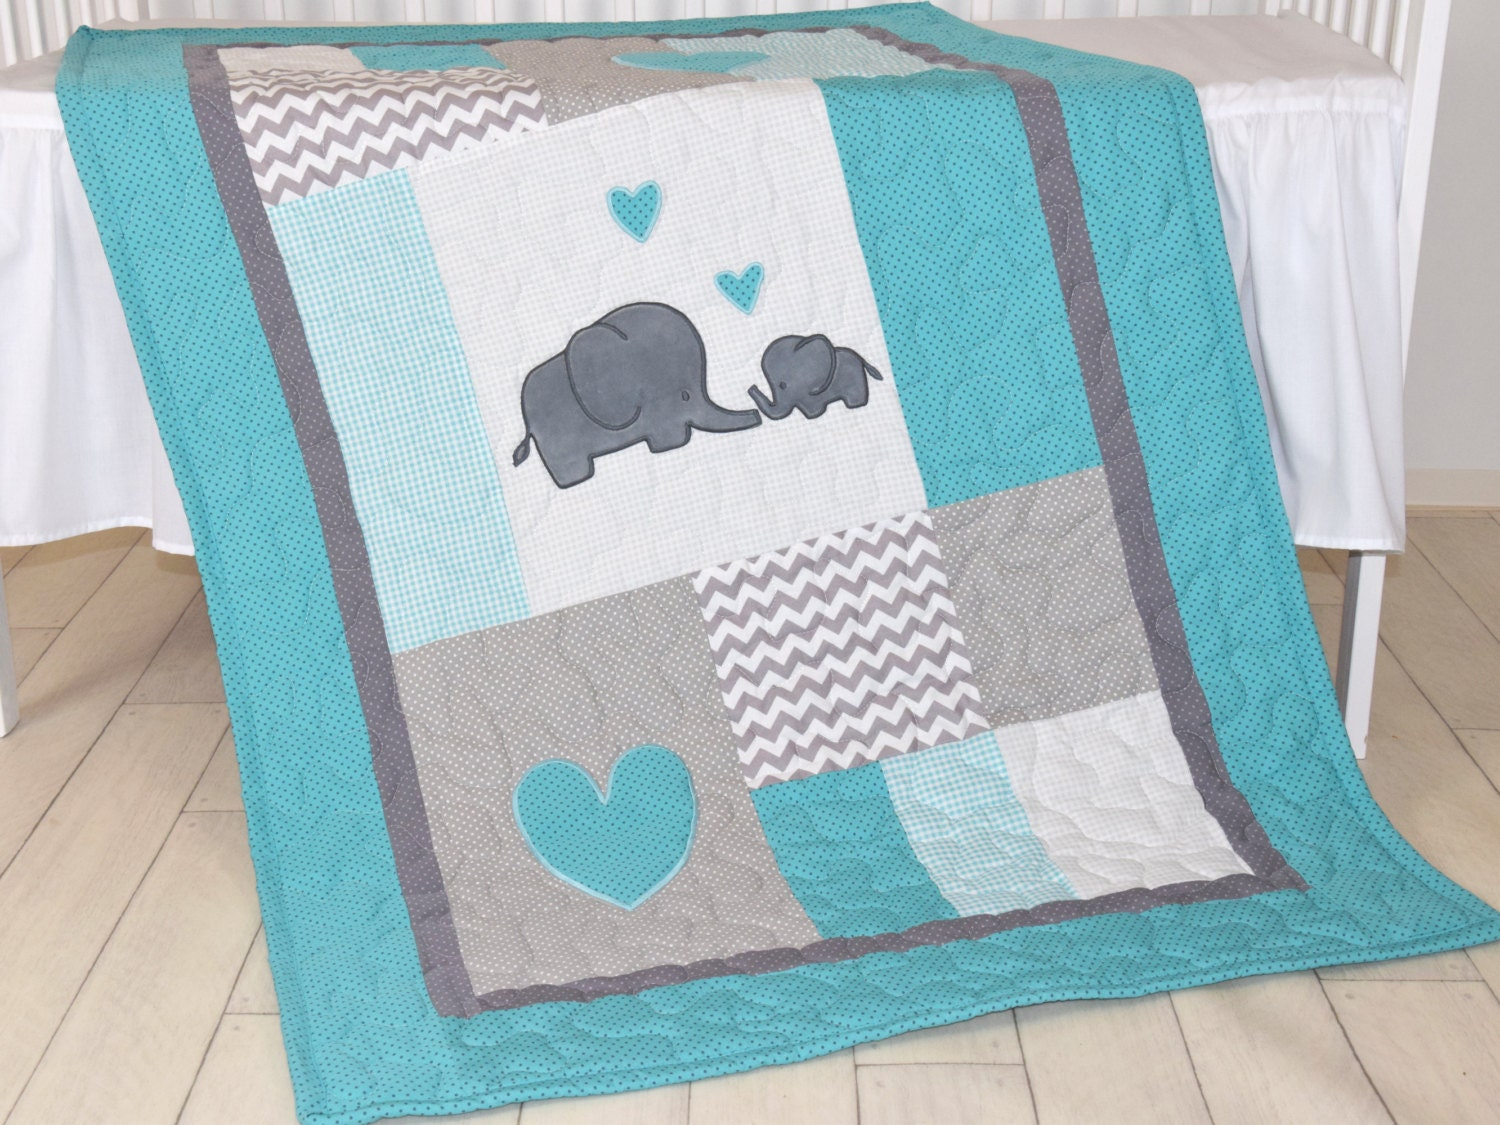 Elephant Baby Bedding Turquoise Blue And Gray Blanket